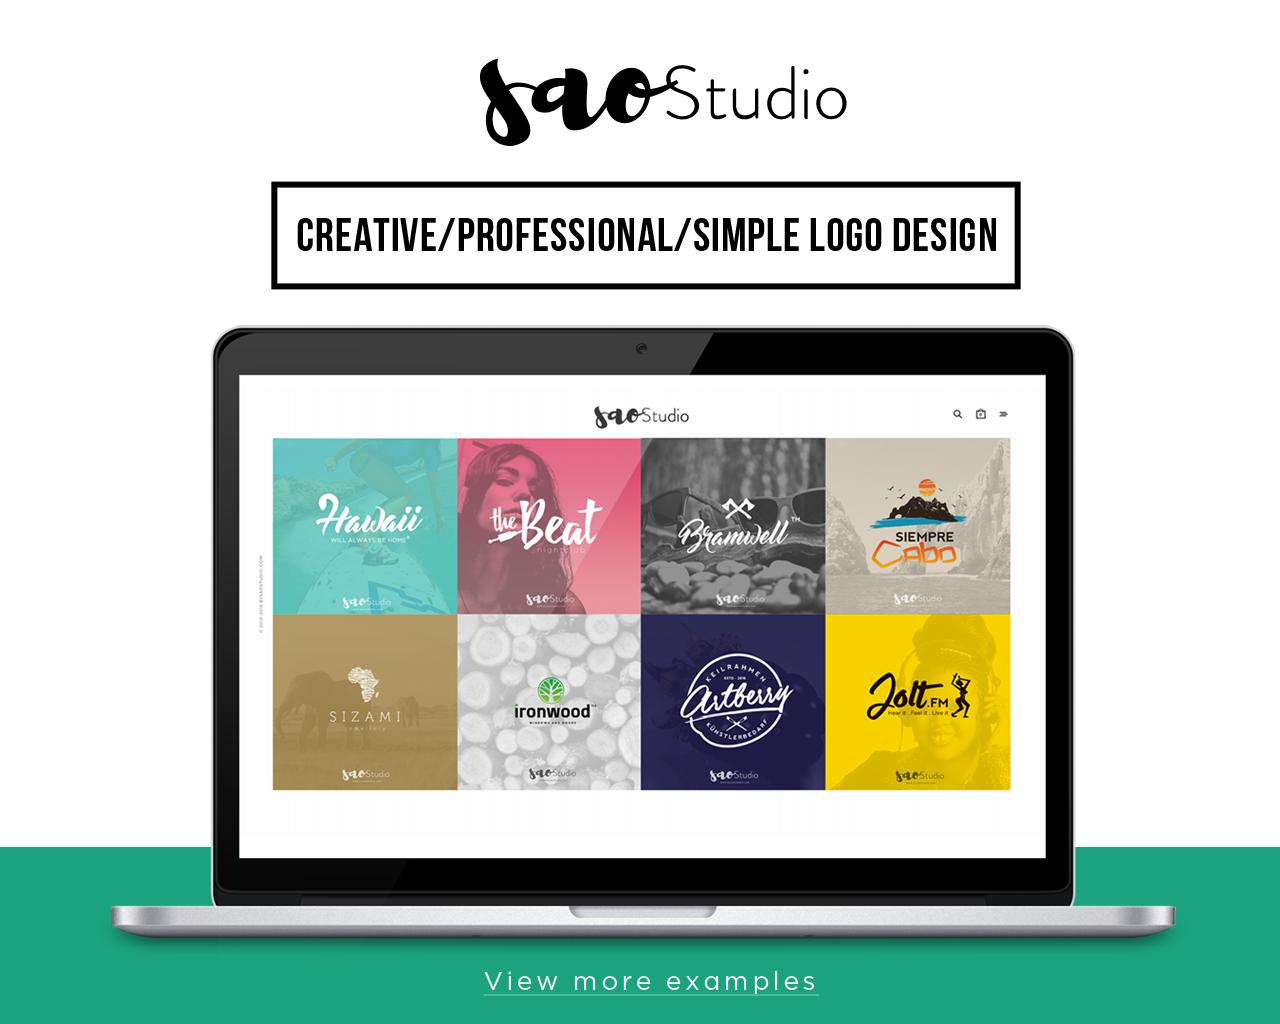 Creative/Professional/Simple Logo Design by SAOStudio - 101636